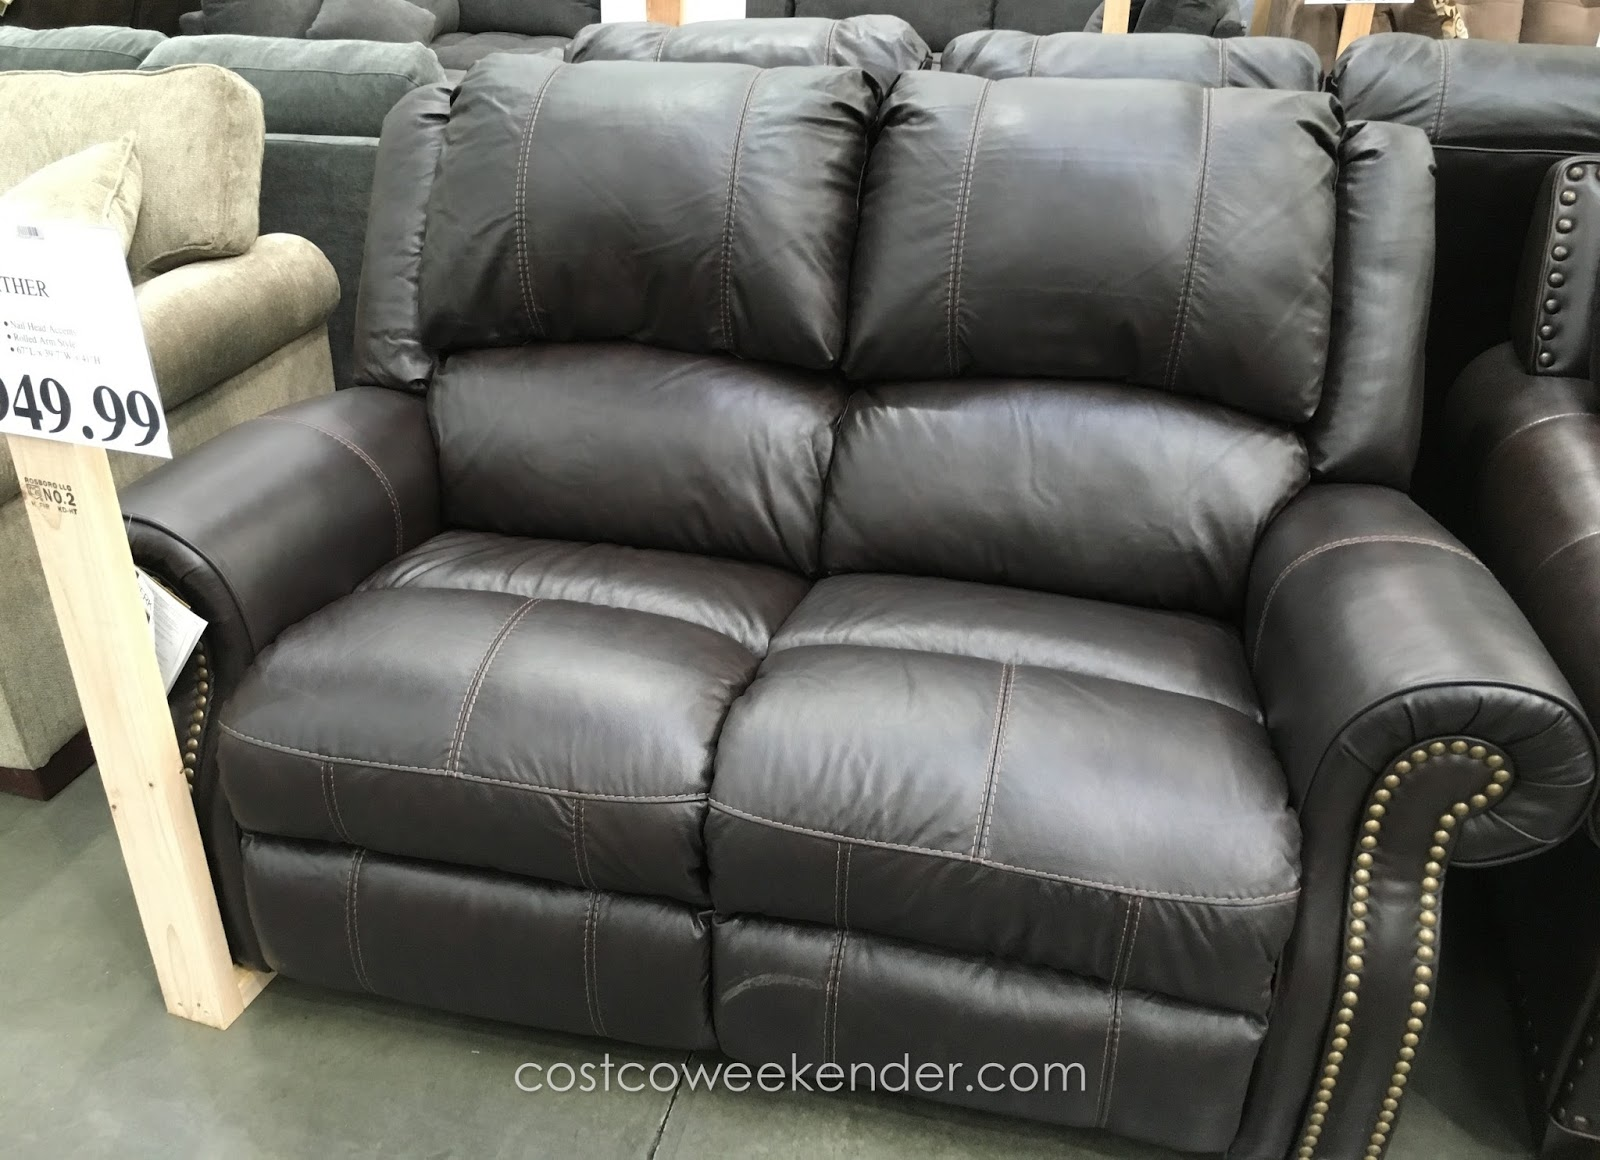 Berkline reclining leather loveseat costco weekender Reclining leather sofa and loveseat